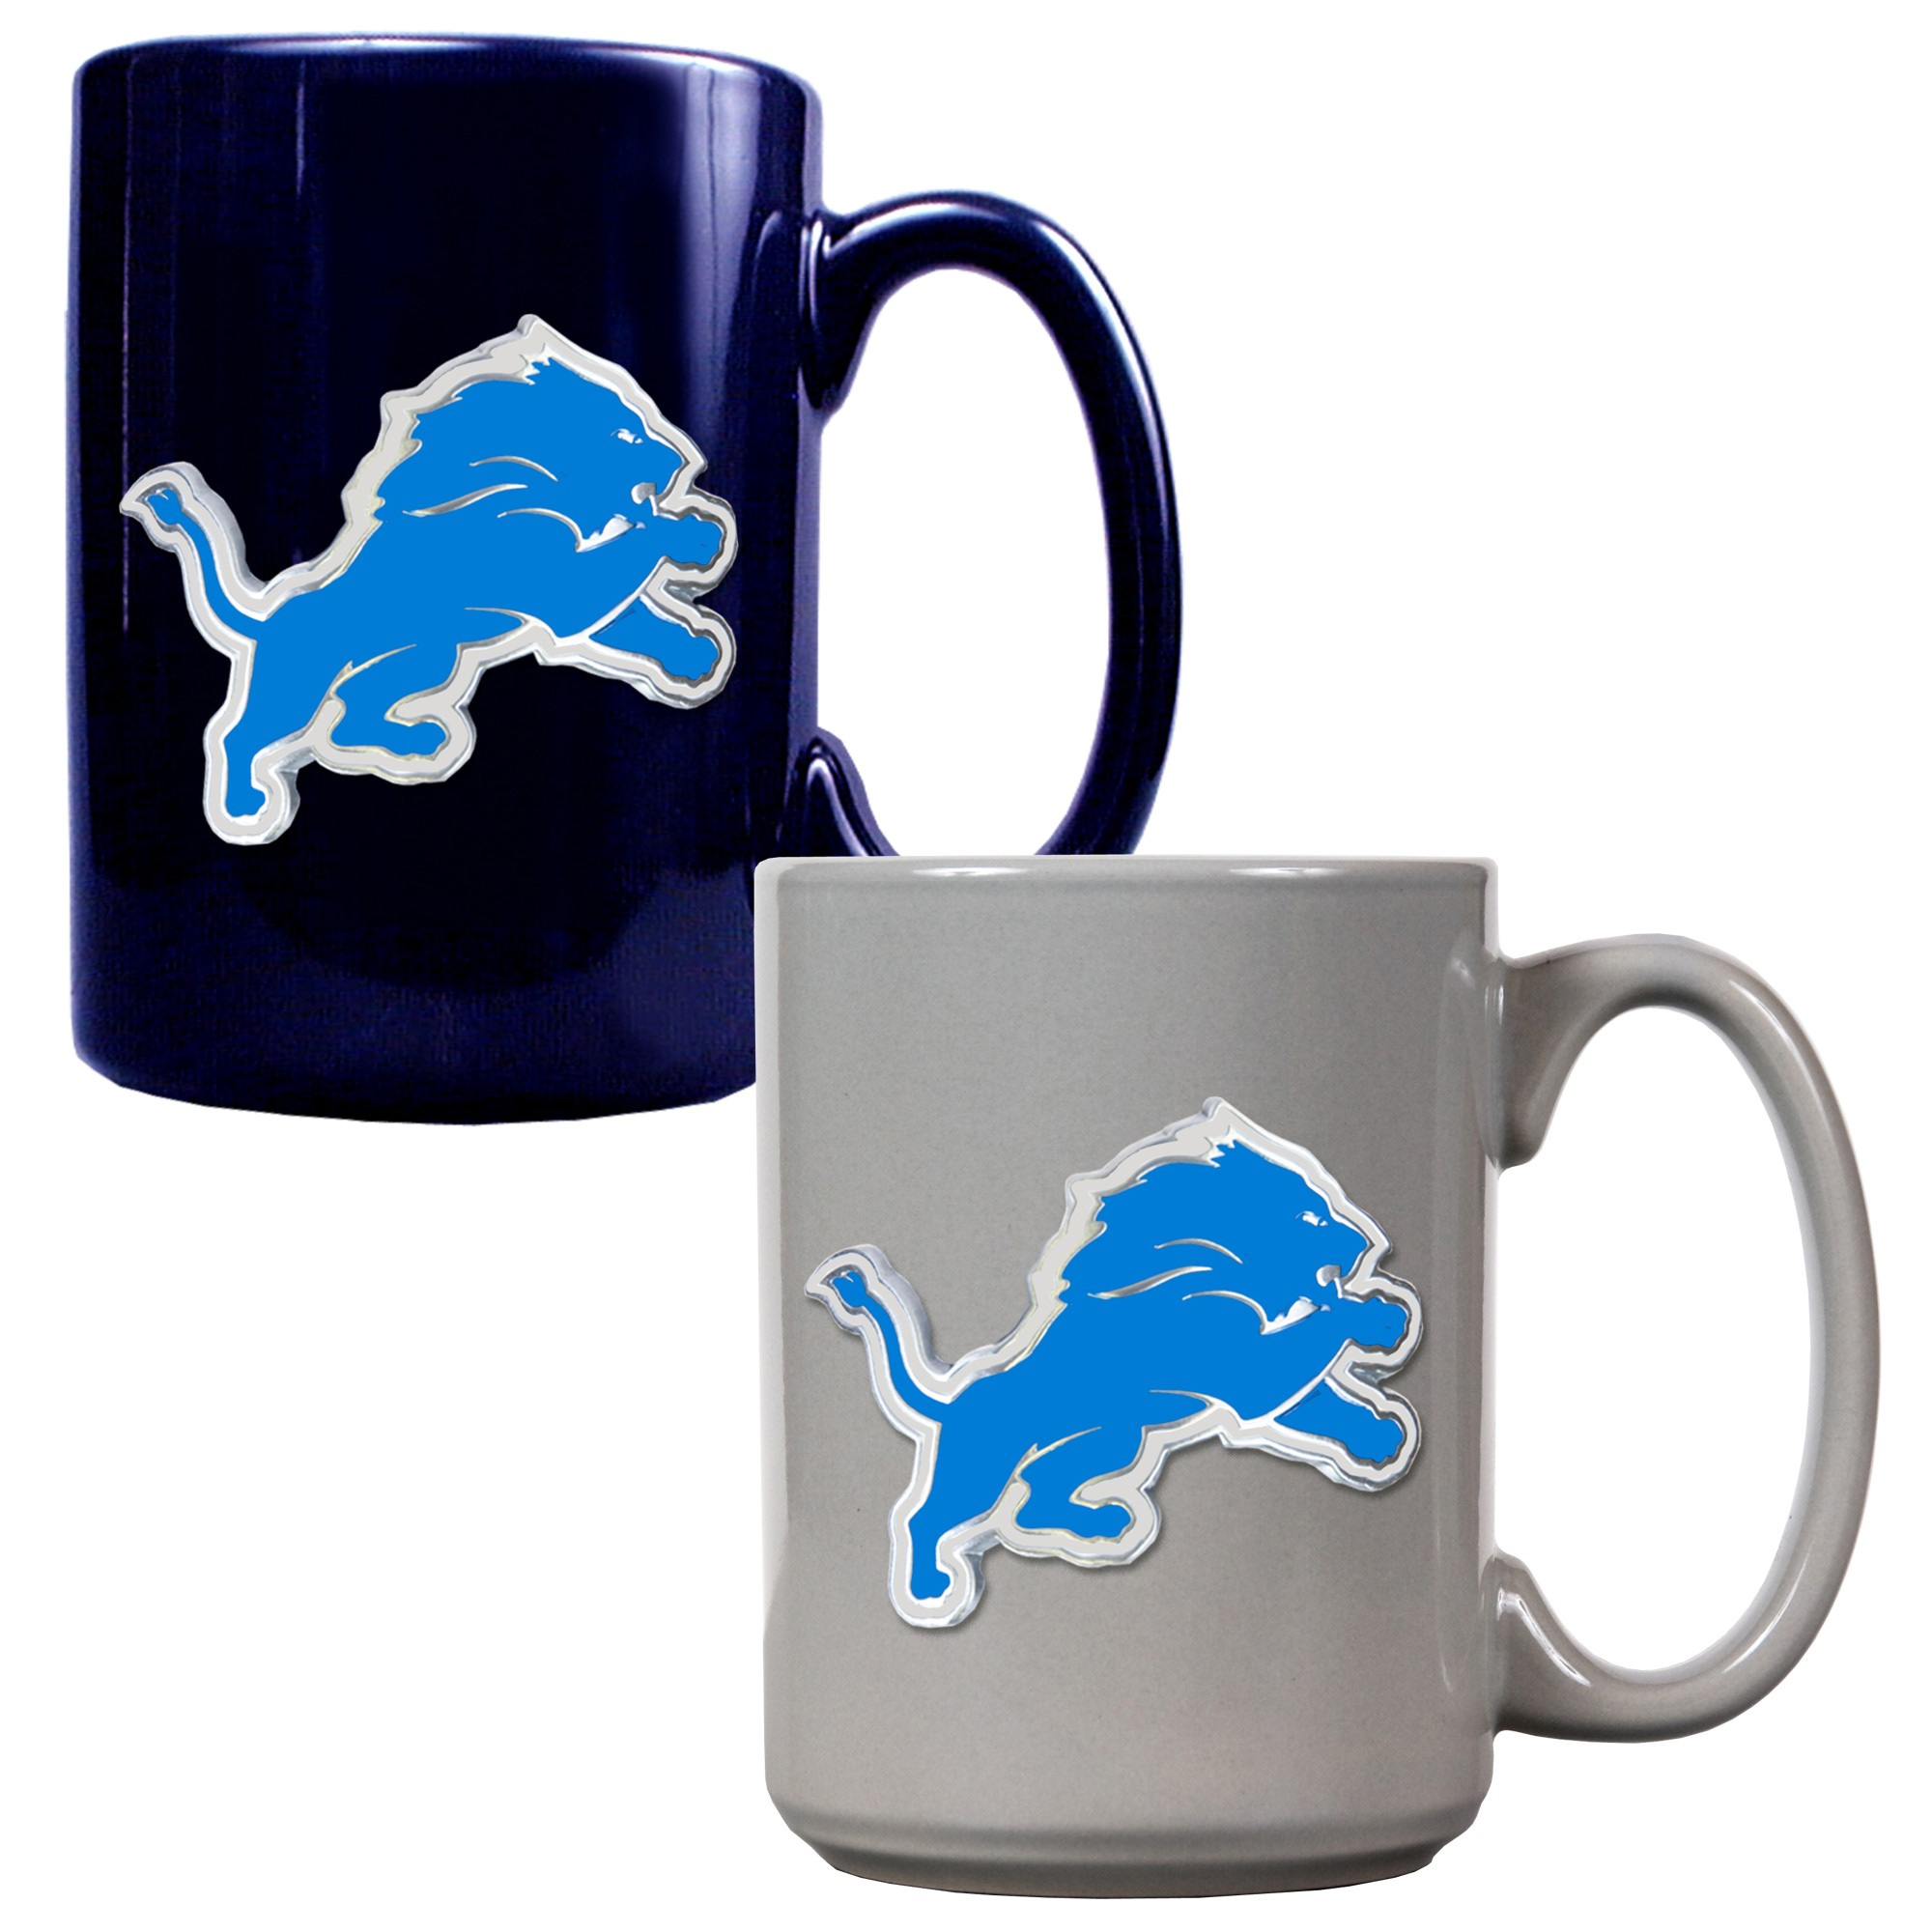 Detroit Lions 15oz. Coffee Mug Set - Blue/Gray - No Size